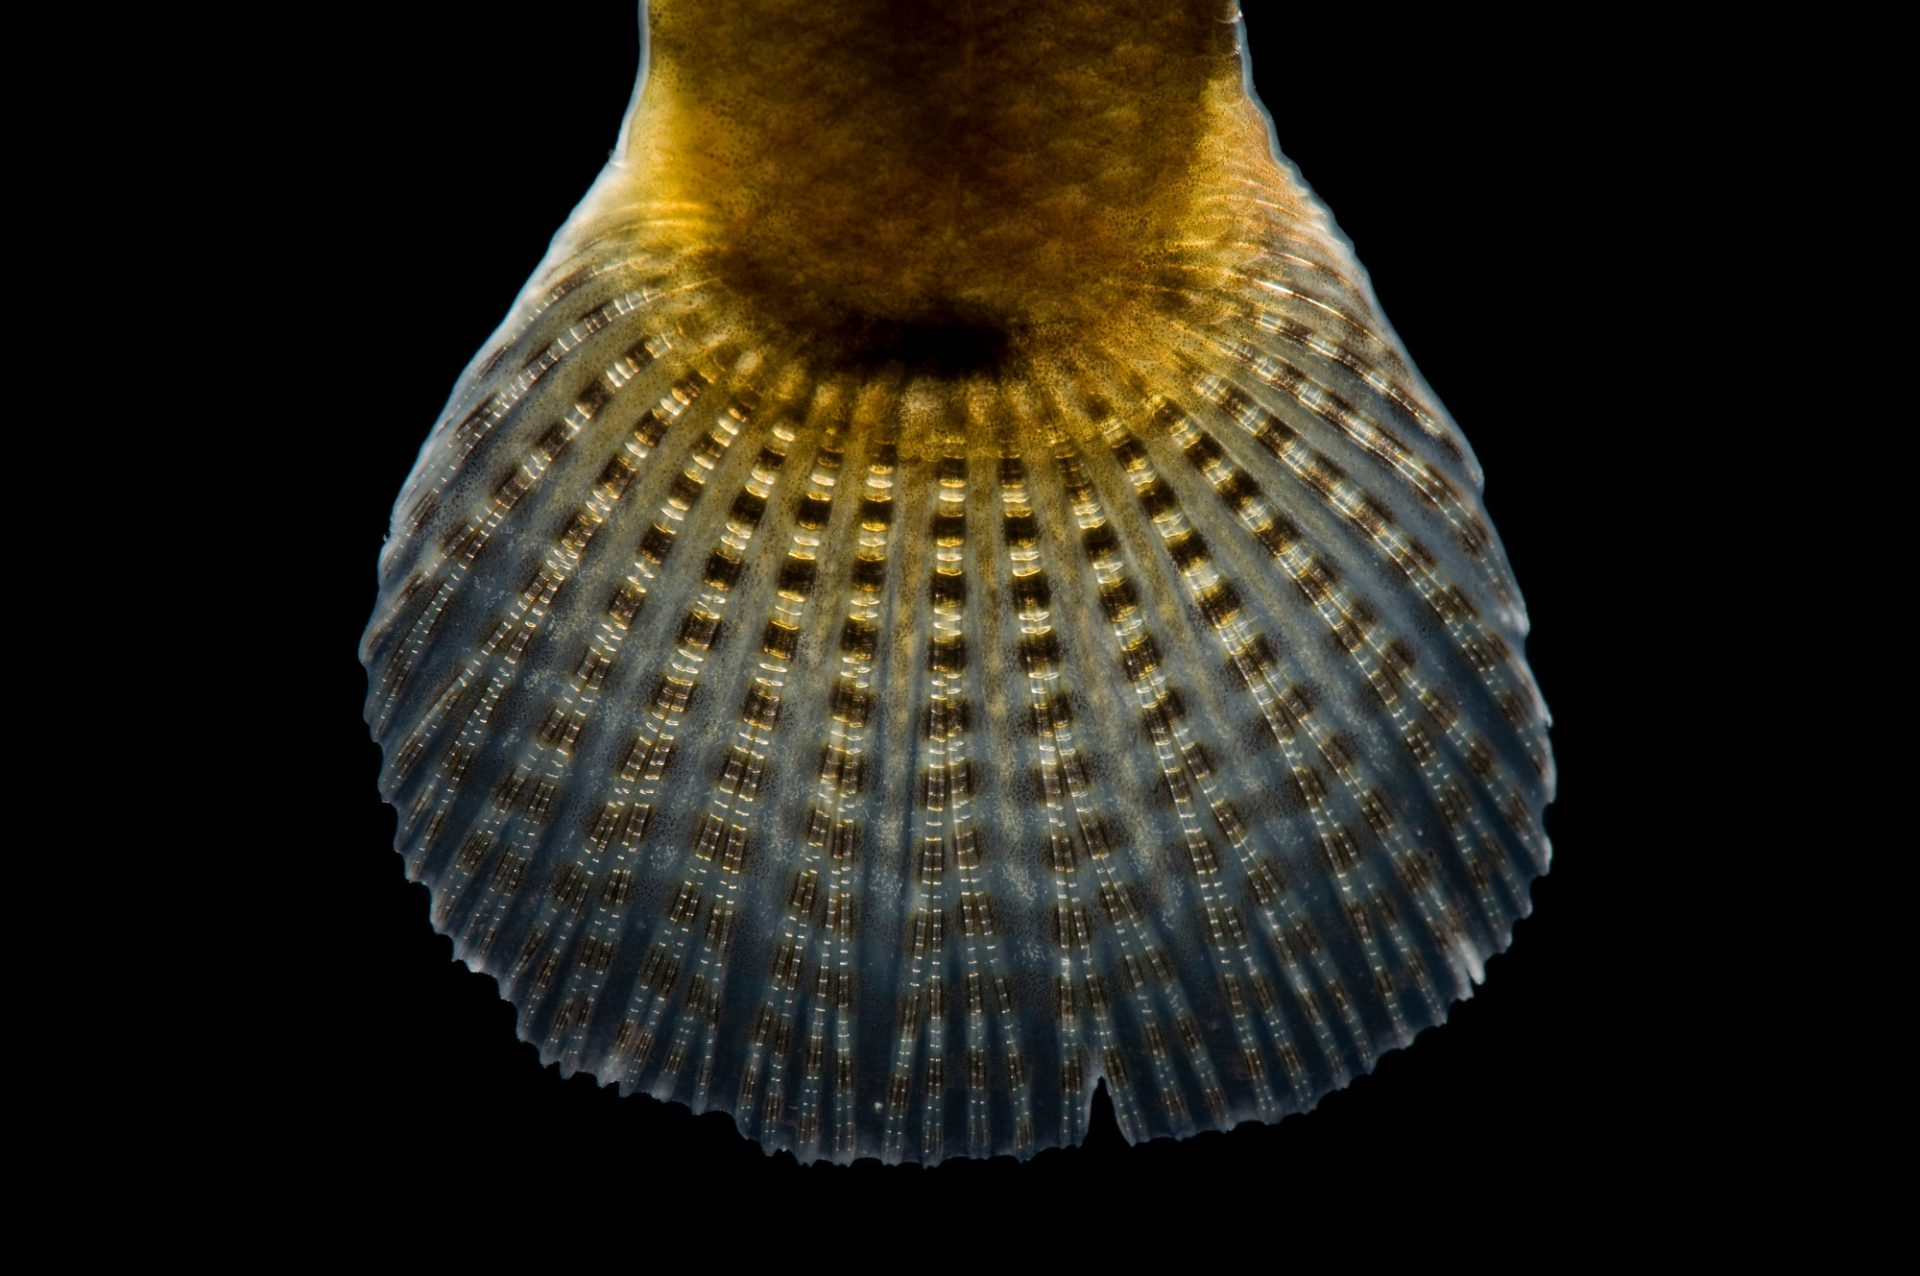 The fin of a relict darter (Etheostoma chienense) a federally threatened species at Conservation Fisheries, a native stream fish breeding center.